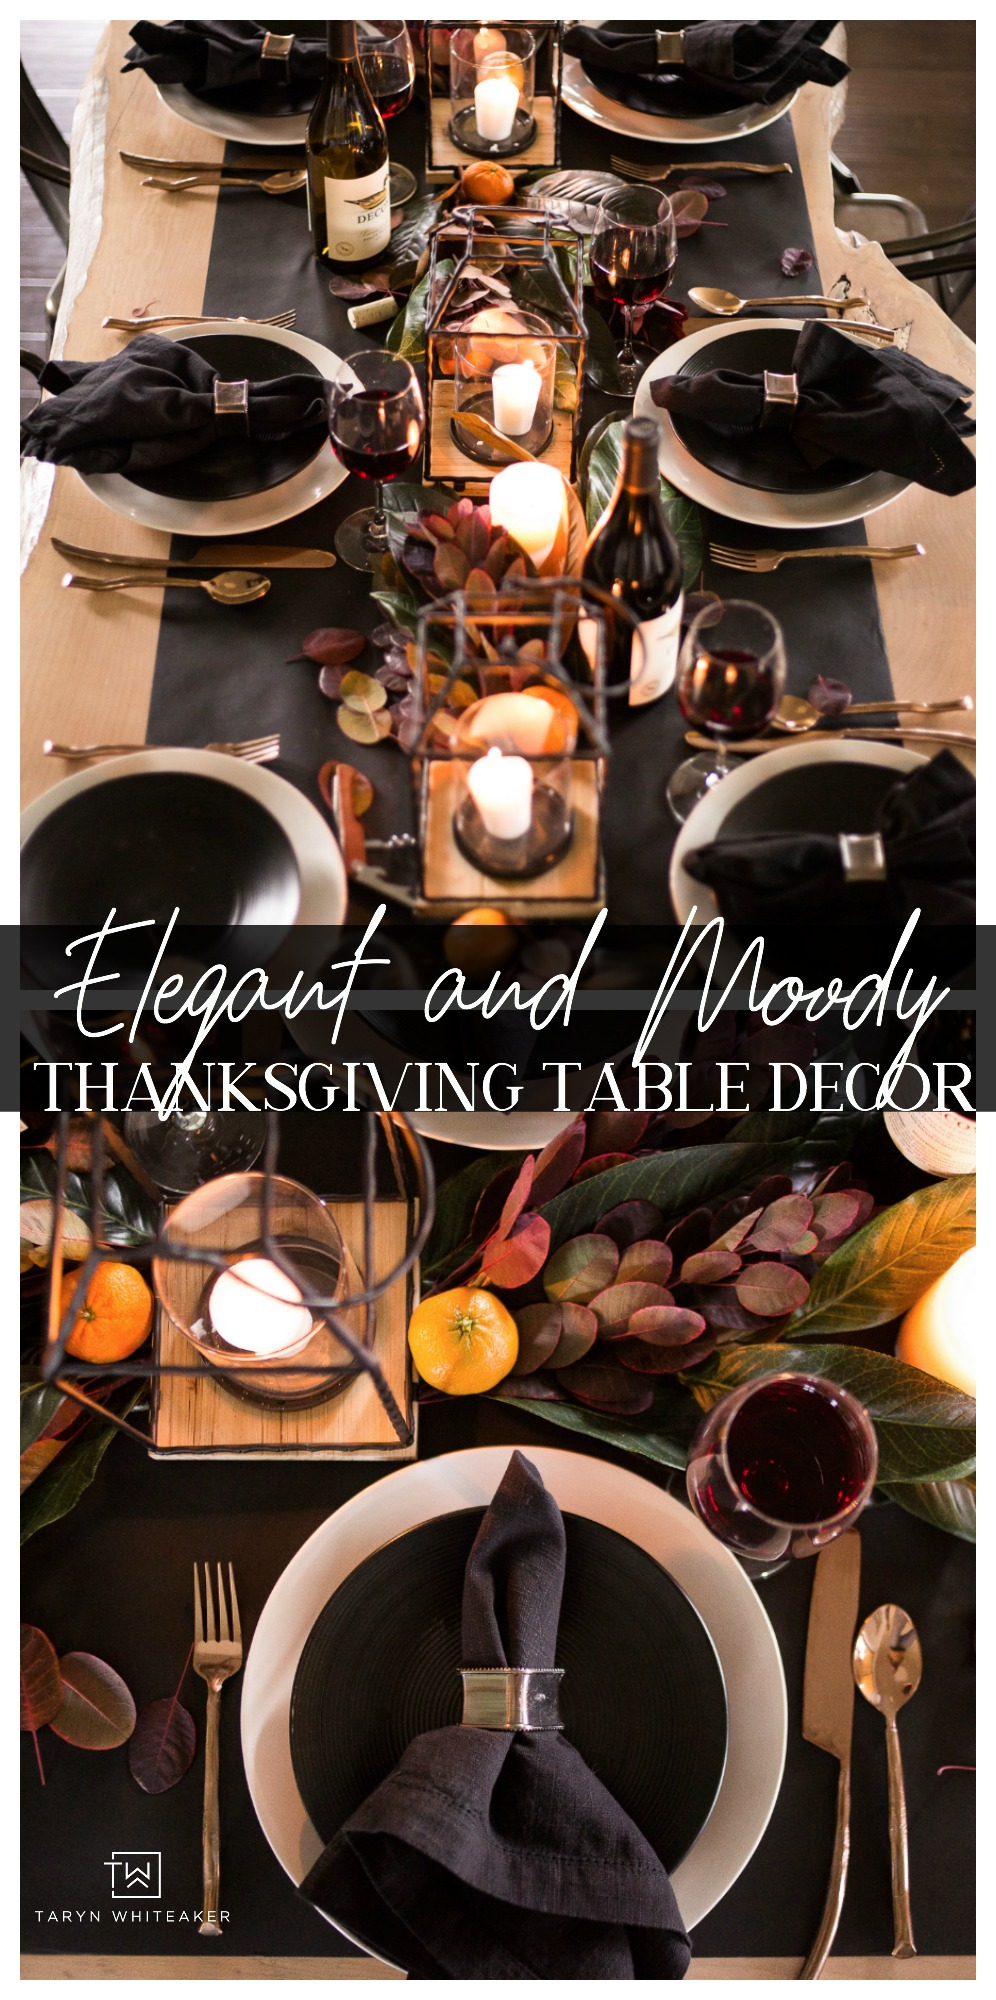 DARK, MOODY AND ELEGANT THANKSGIVING TABLESCAPE FEATURING RICH DARK EARTH TONES WITH MAGNOLIA LEAVES AND COPPER